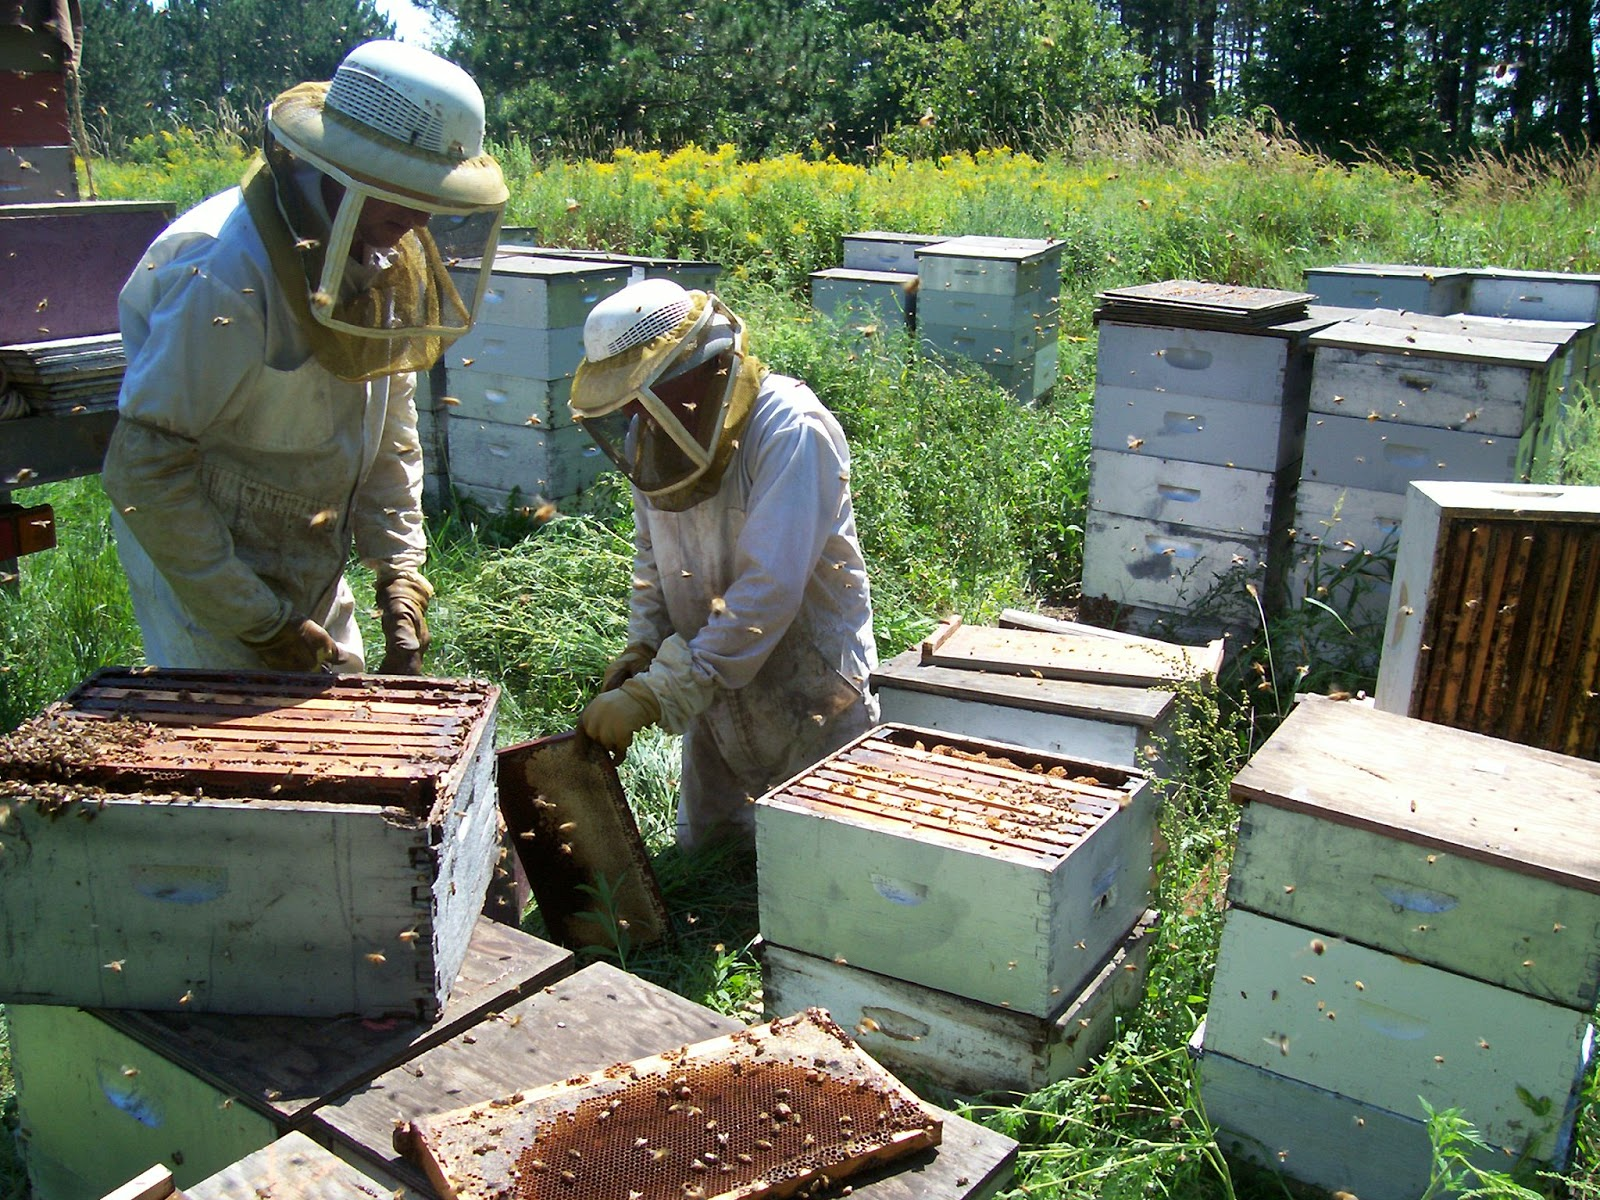 The Commercial Beekeeper Often Cannot Dink Around Too Much And Save All Problem Hives They Probably Wont Make A Honey Harvest Anyways